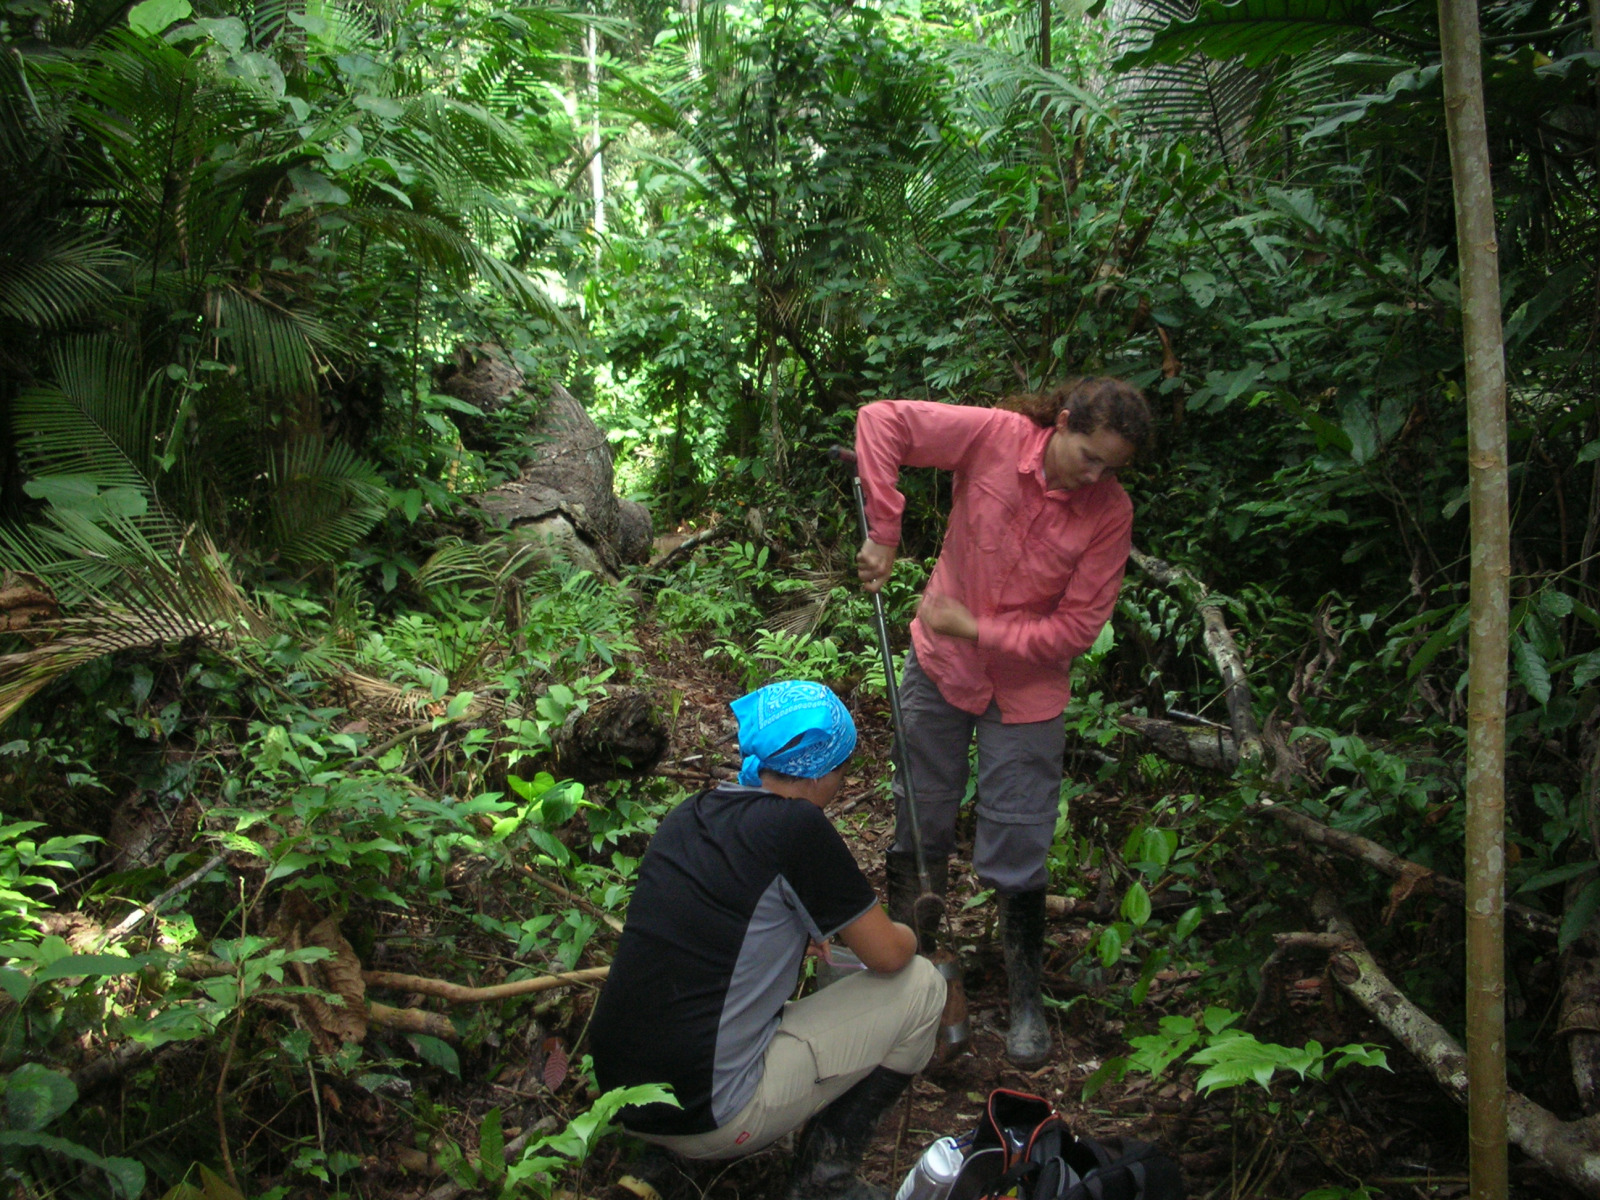 Crystal McMichael and Monica Zimmerman augur for soil cores in the Amazon.